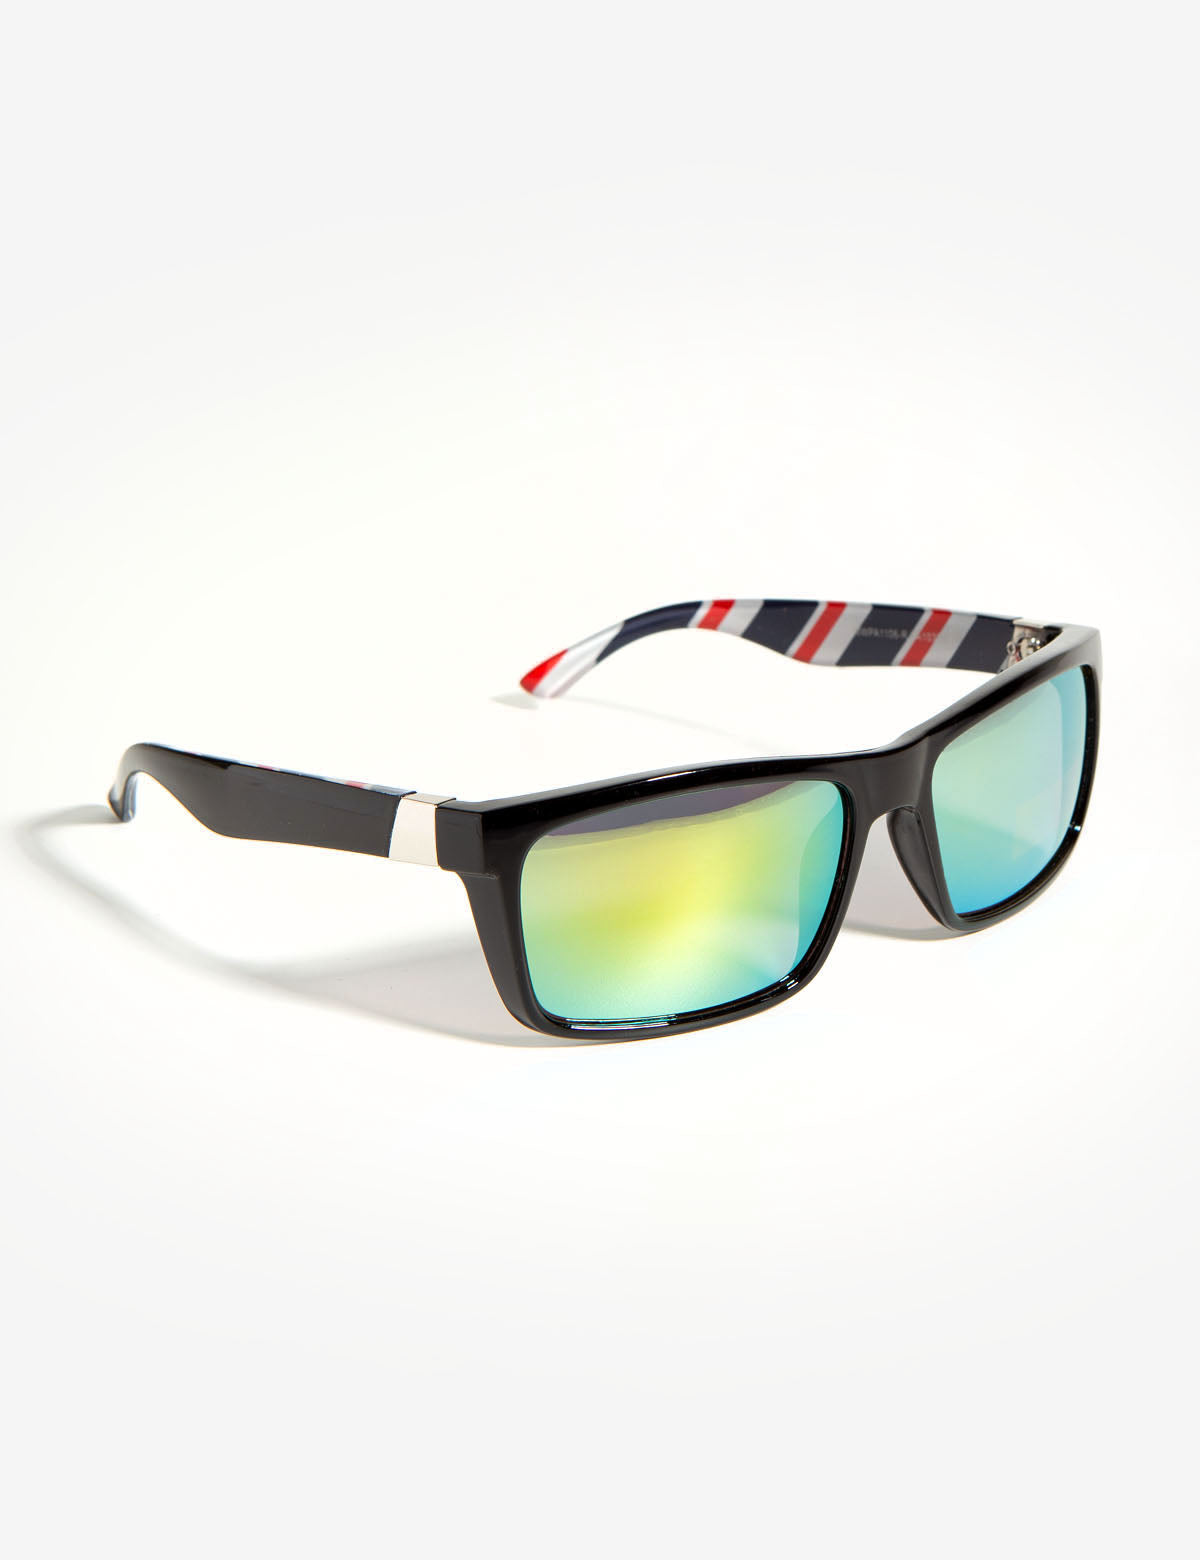 RECTANGLE BARBER PATTERNED SUNGLASSES - U.S. Polo Assn.